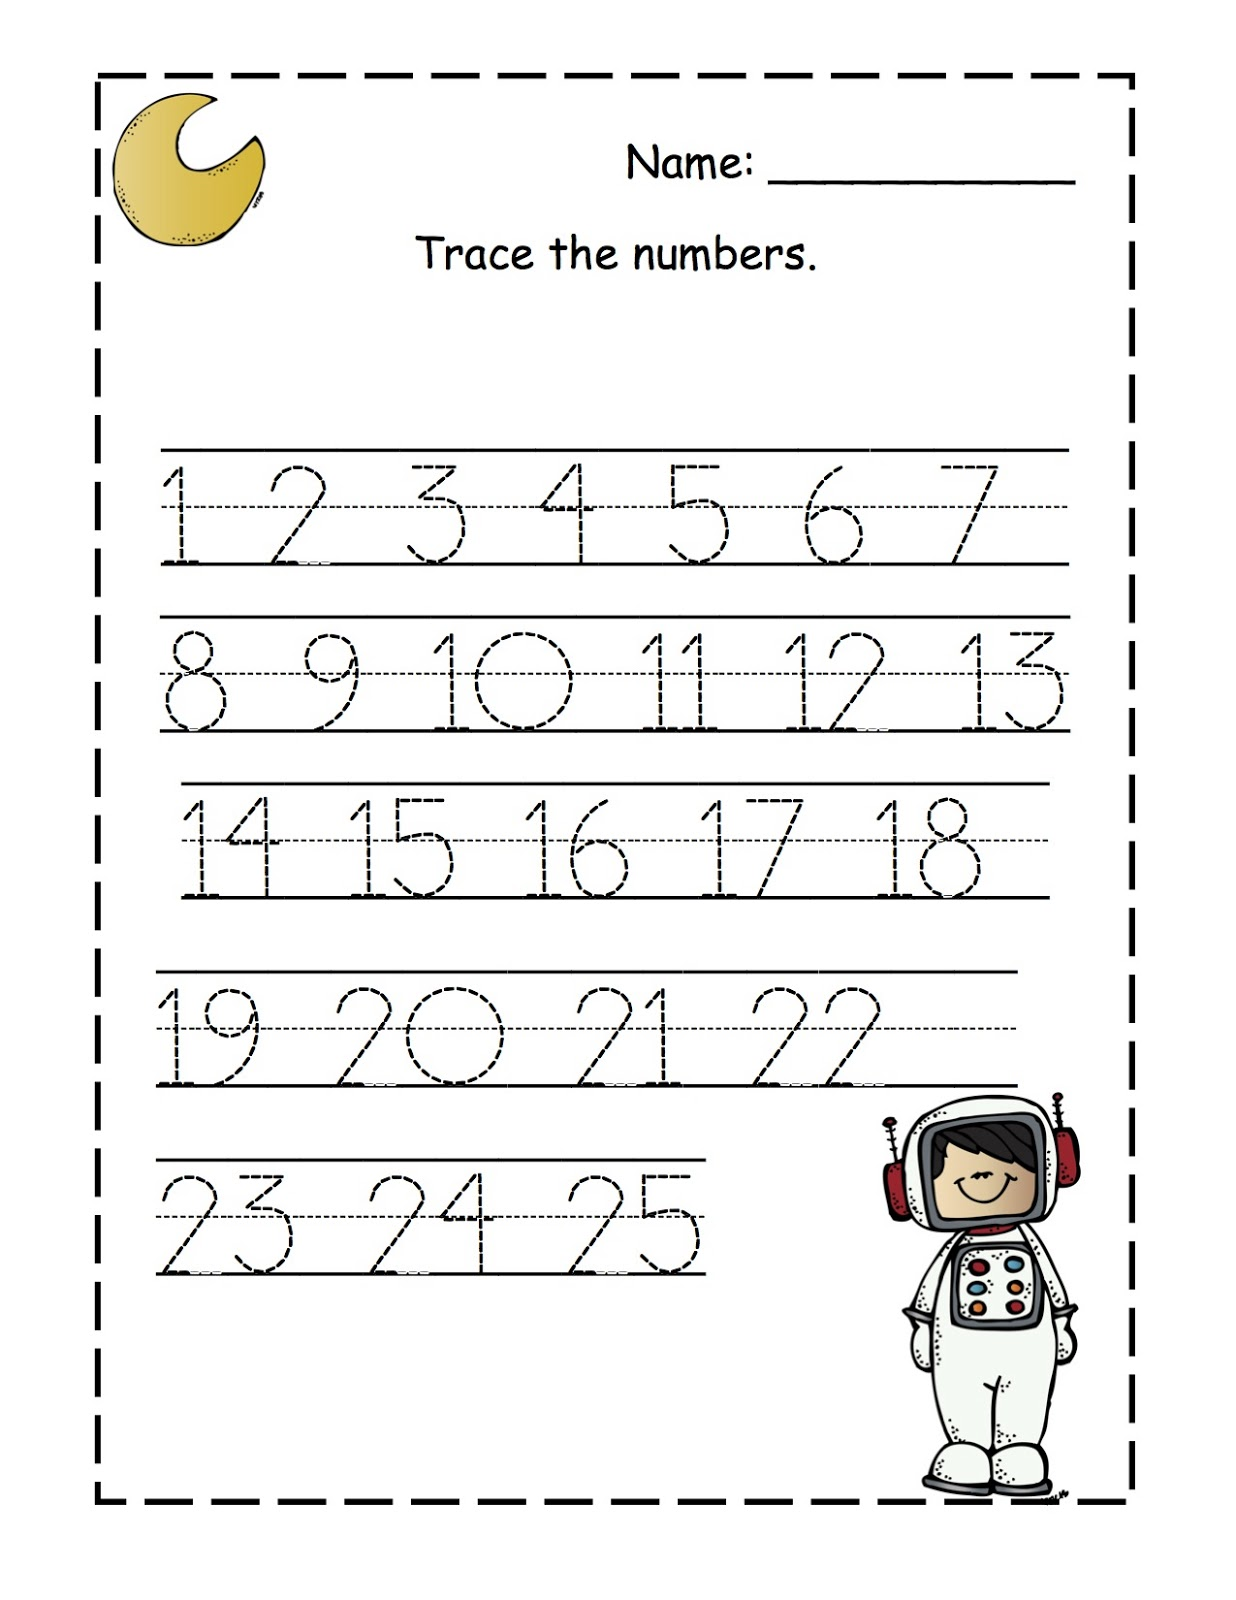 Printables Traceable Numbers Worksheets 1 20 Kigose